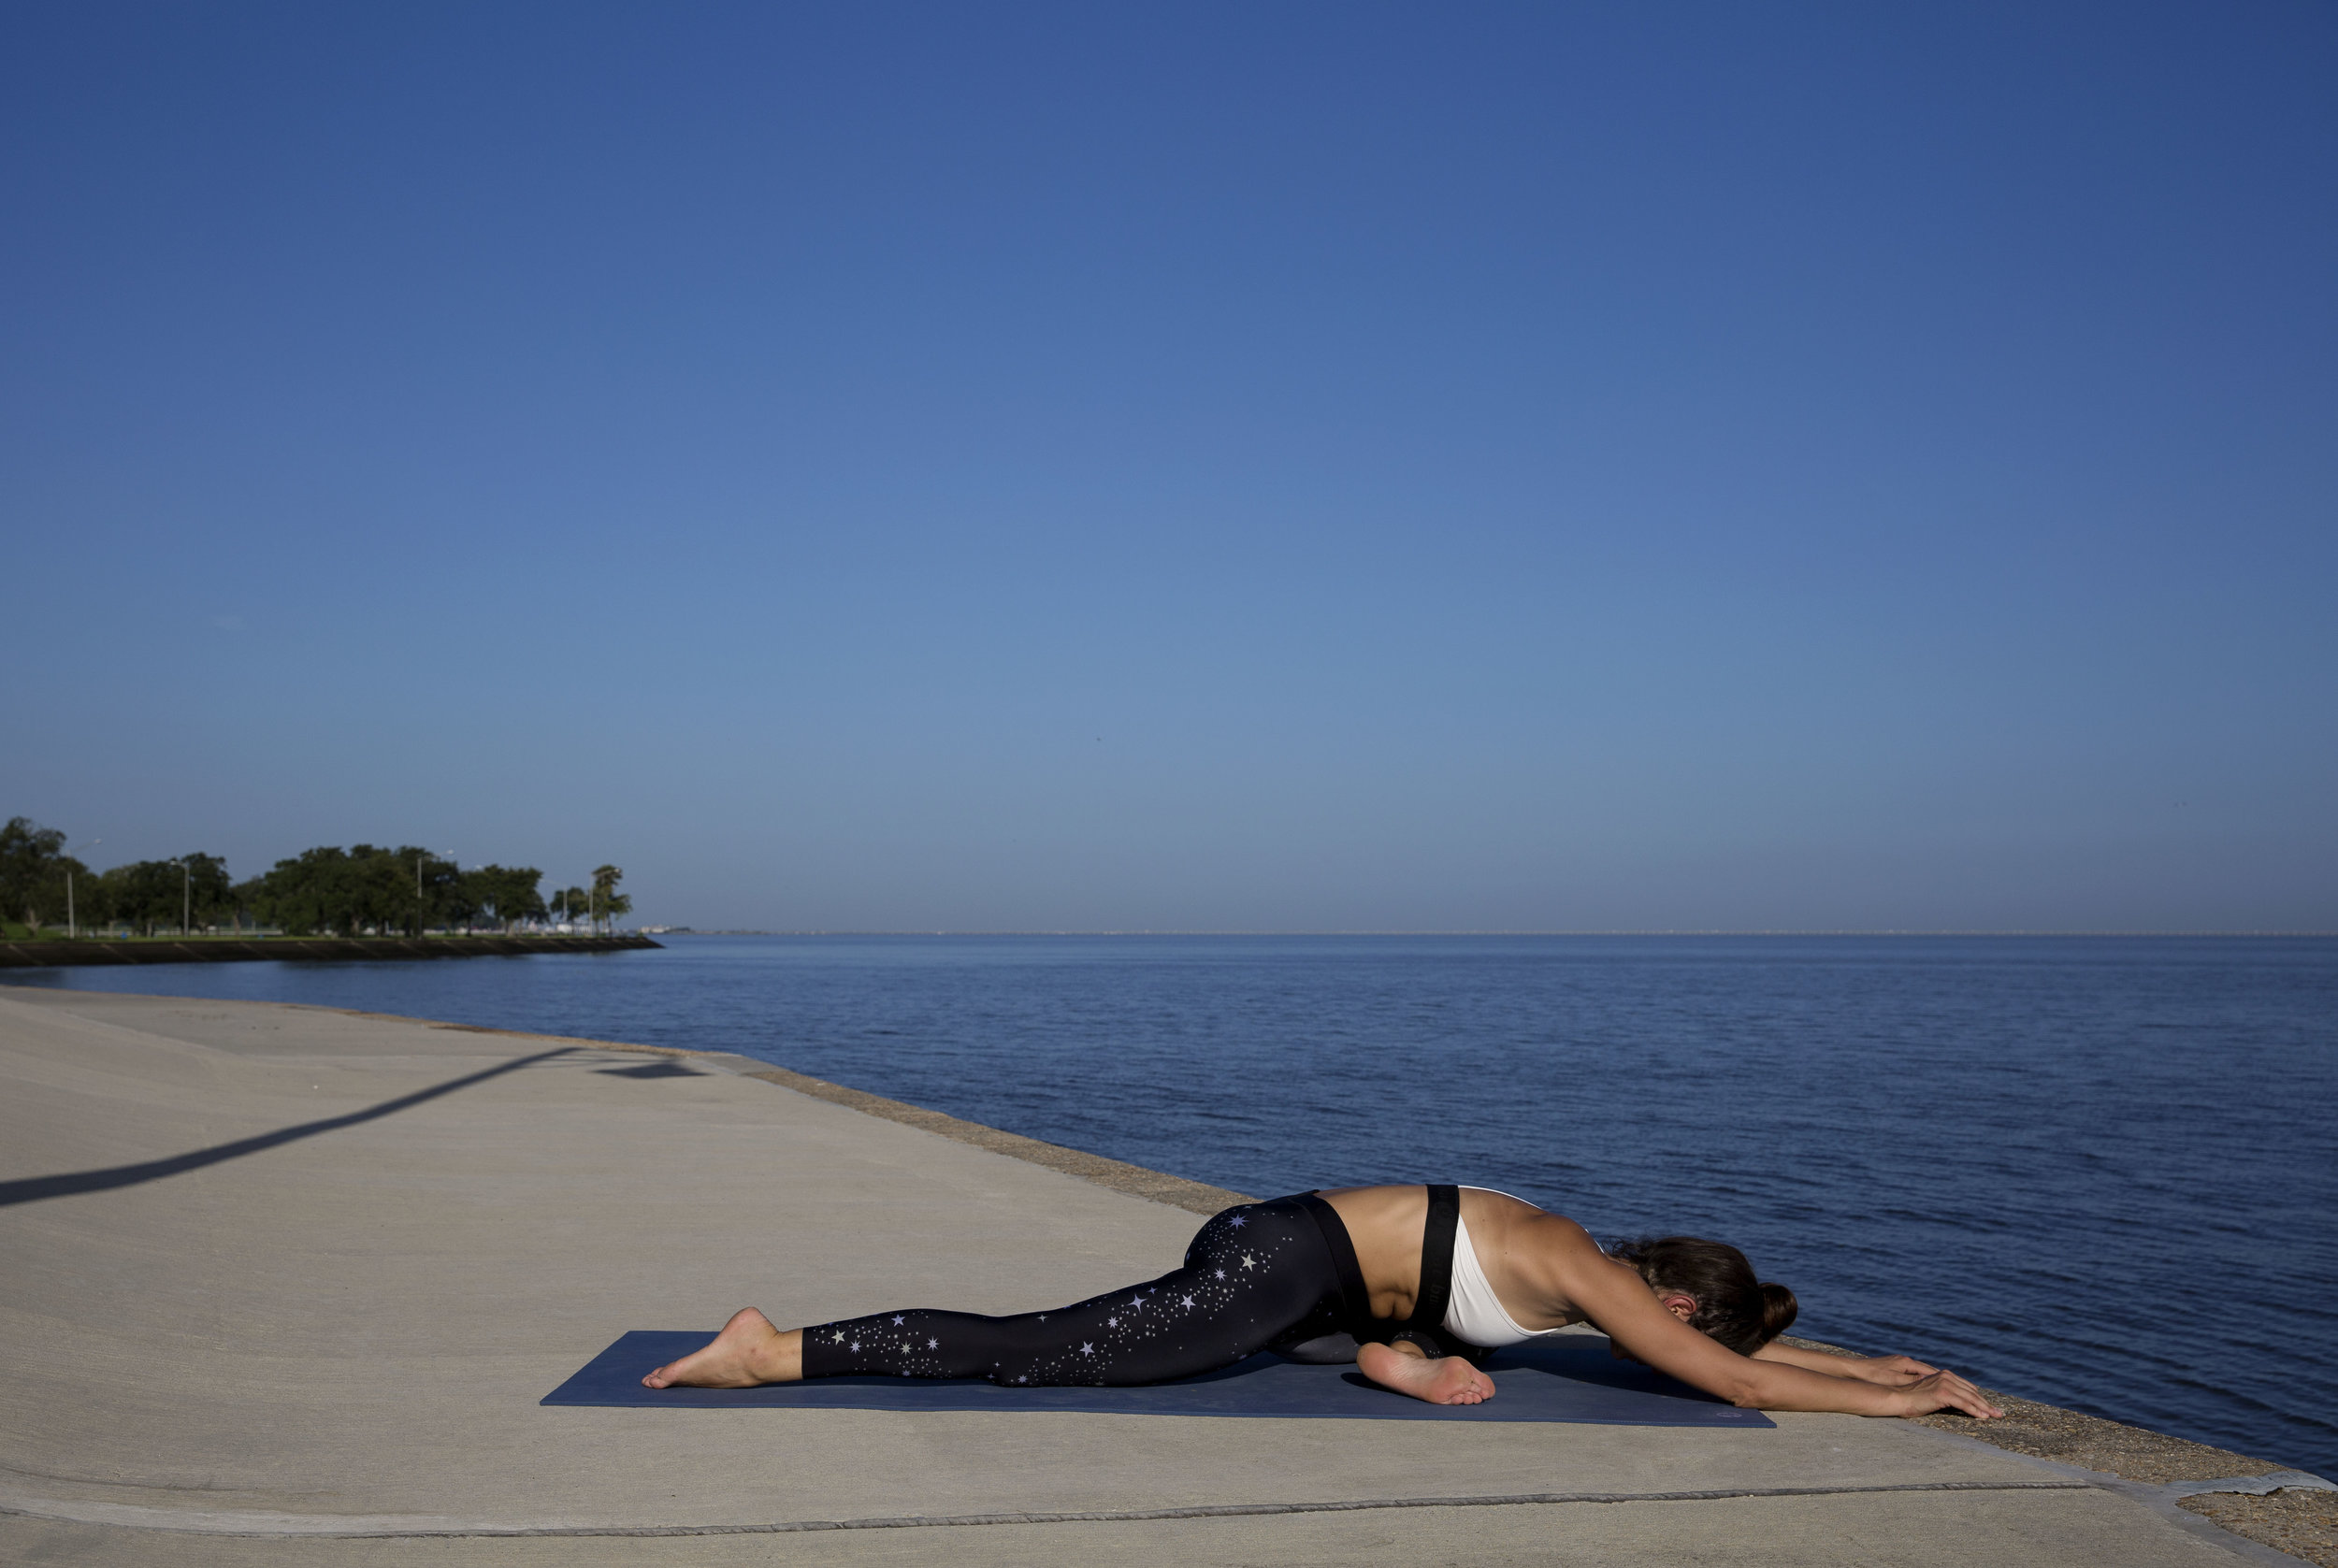 Exhale down into the pose. Every inhale get longer, every exhale go deeper